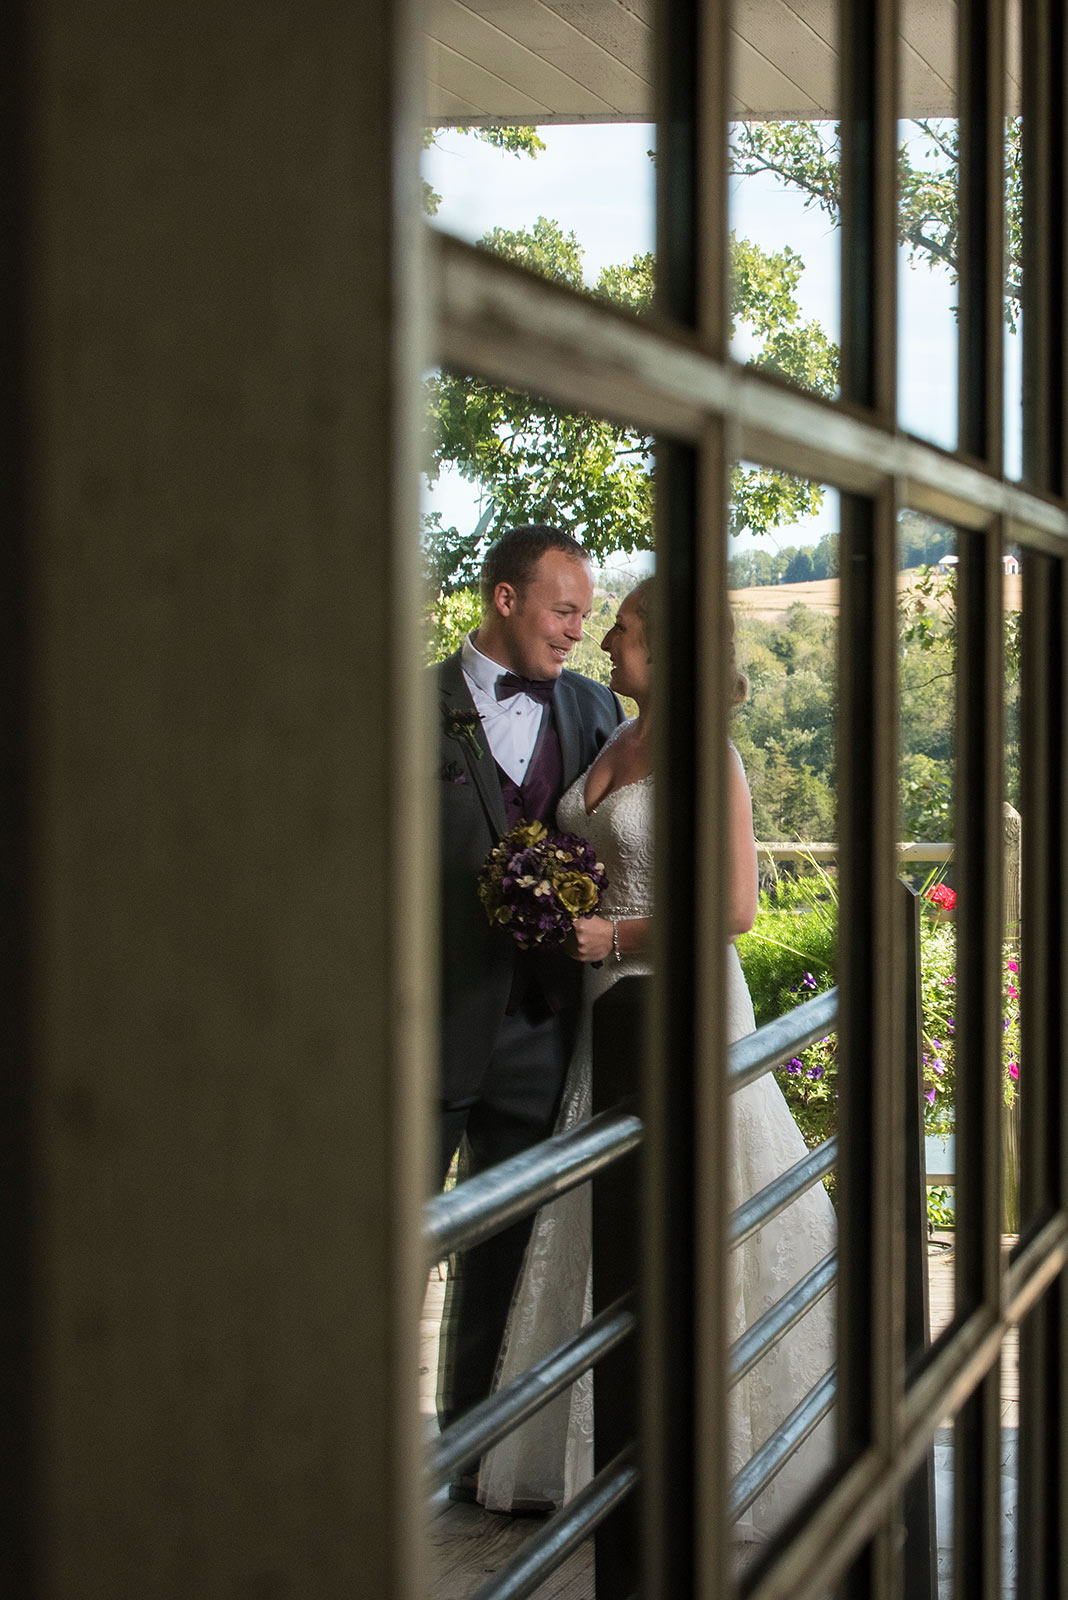 Bride Groom window reflection Eagle Ridge Resort Galena